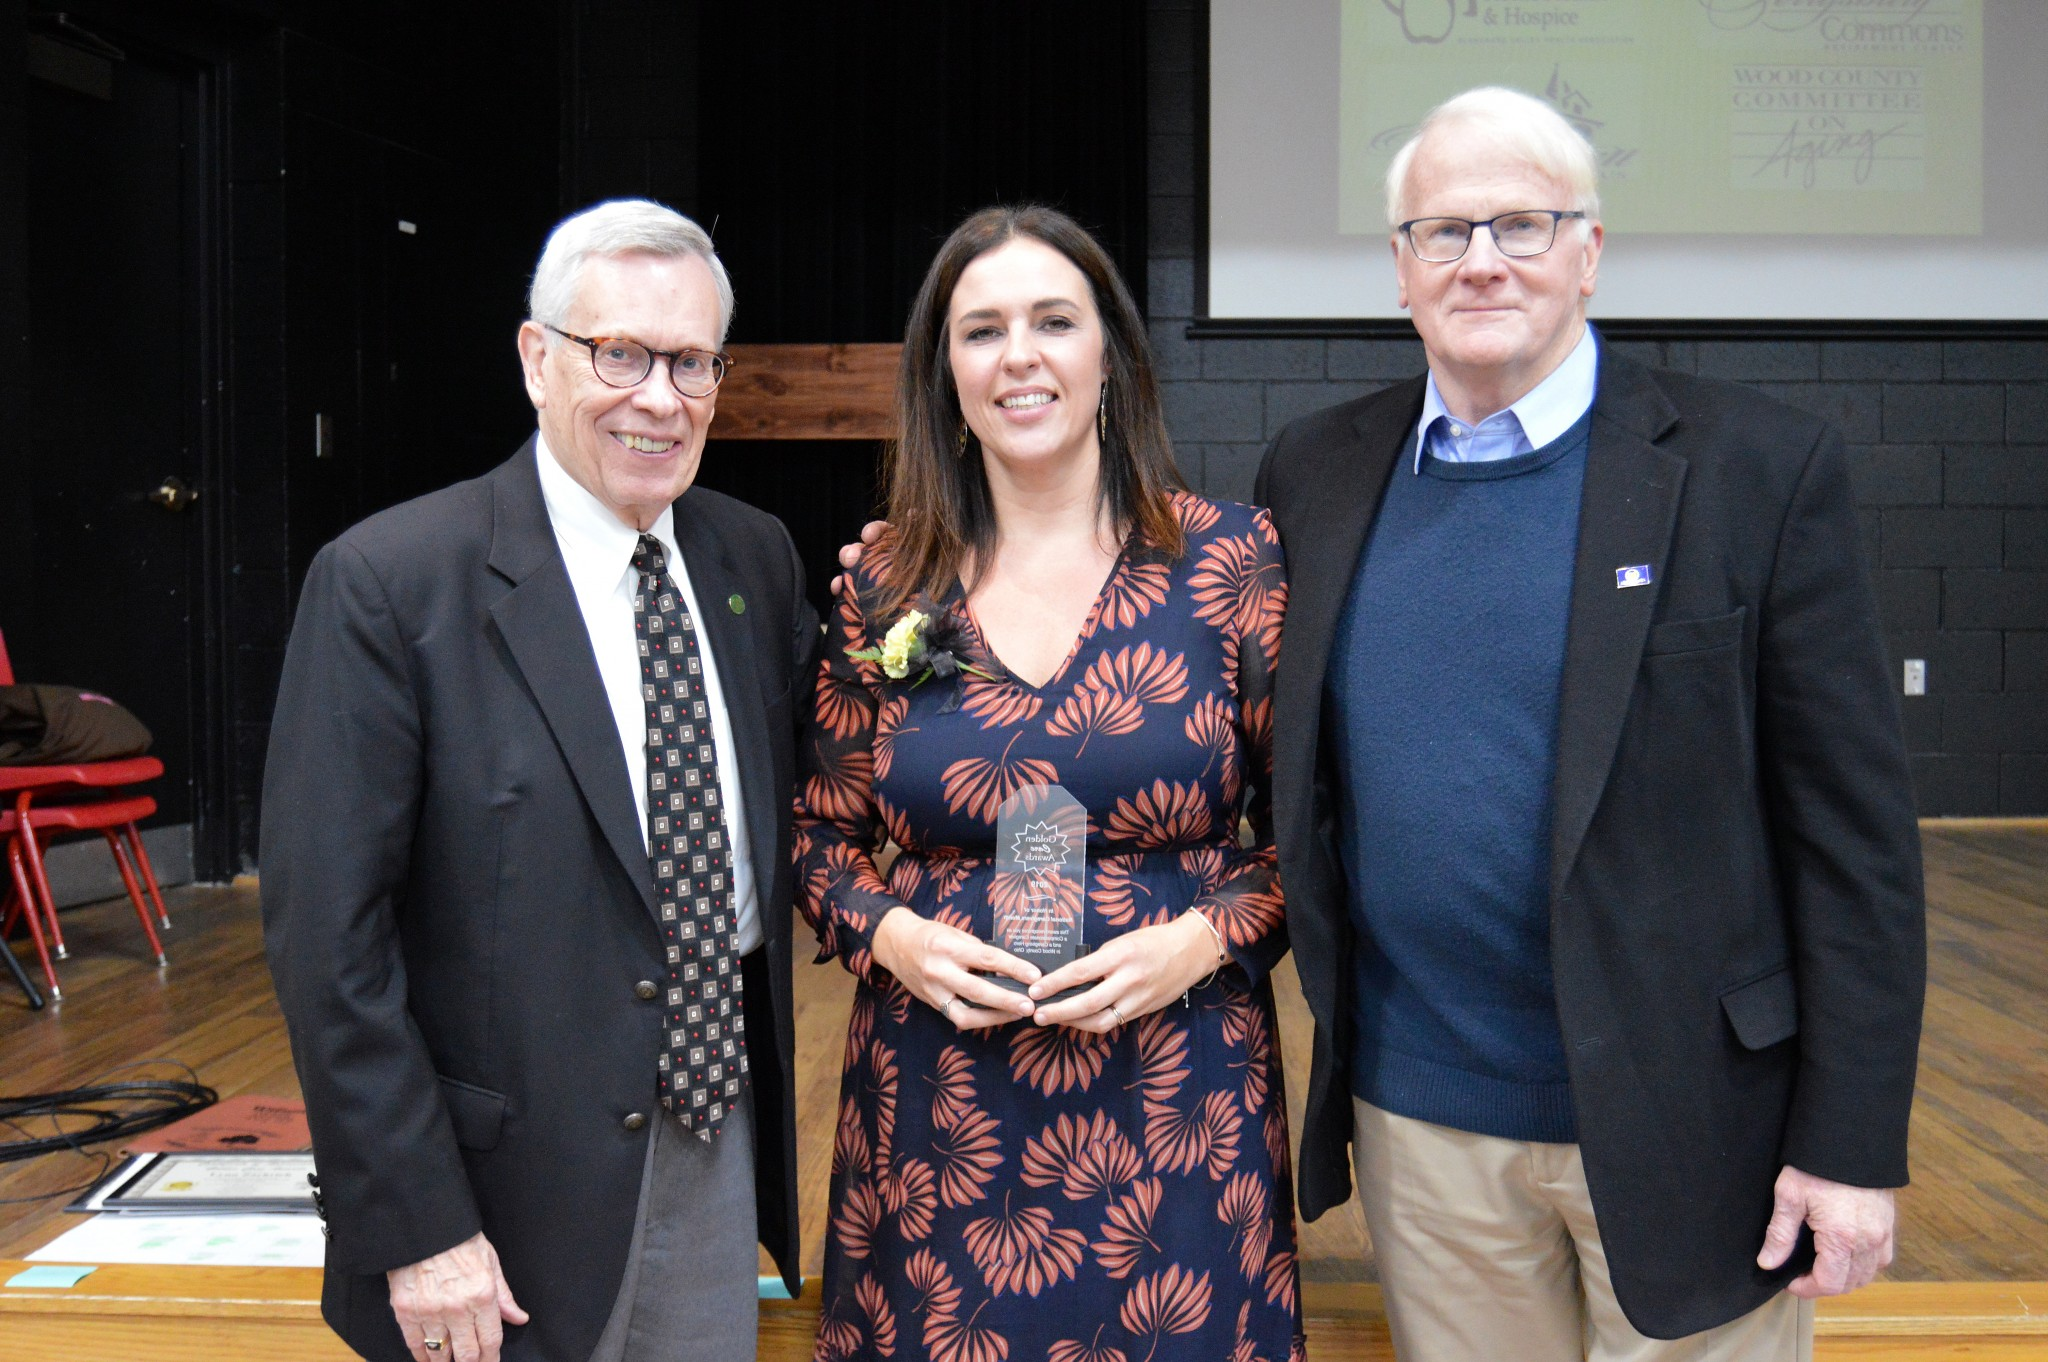 Anna Anderson, medical staff caregiver from Bridge Home Health and Hospice, pictured with Bowling Green Mayor Richard Edwards (left) and Wood County Commissioner Ted Bowlus. (Submitted photo)